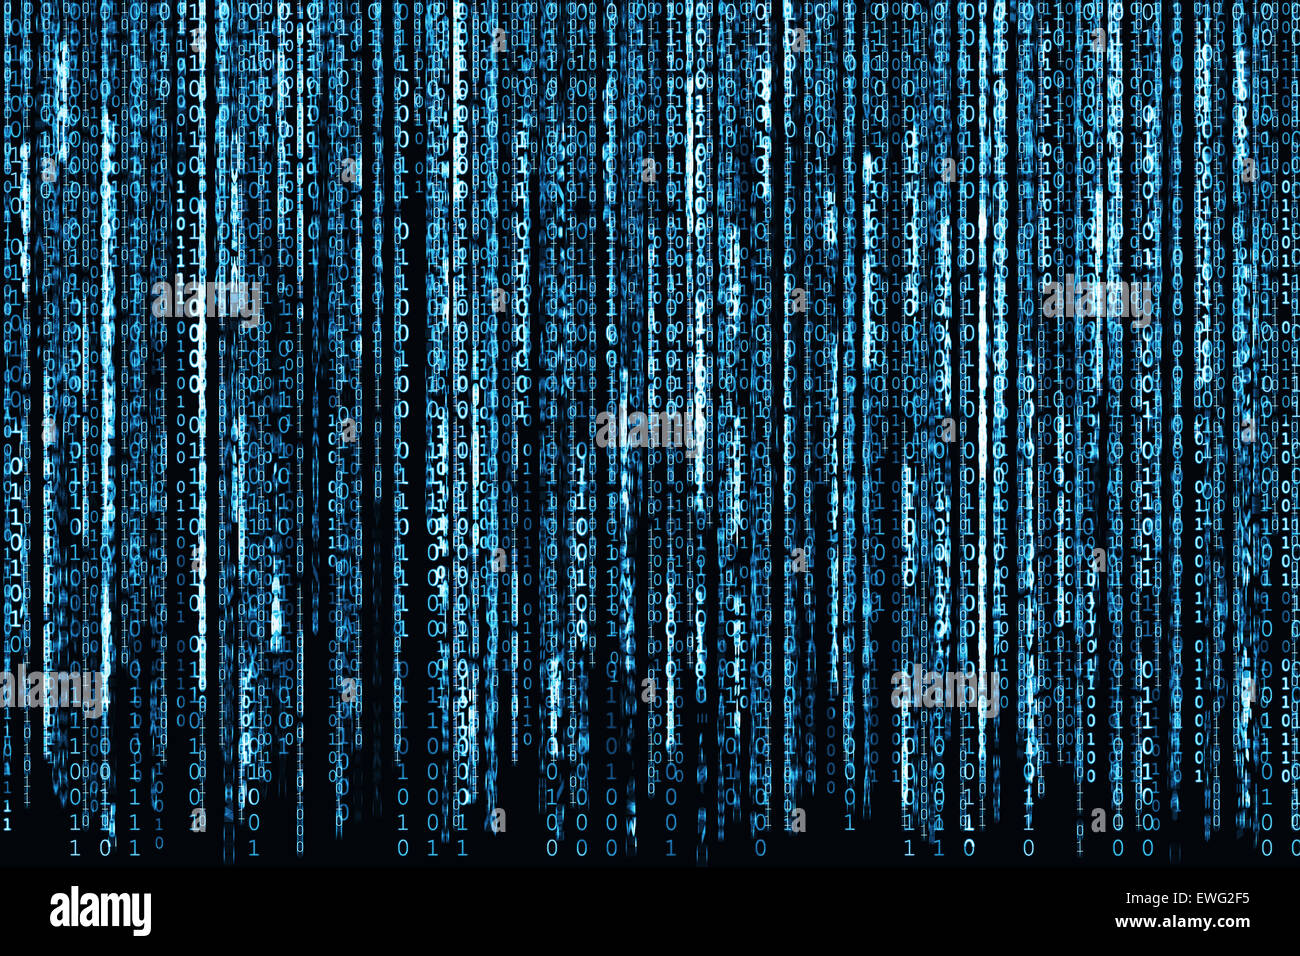 Blue Binary Code - Stock Image